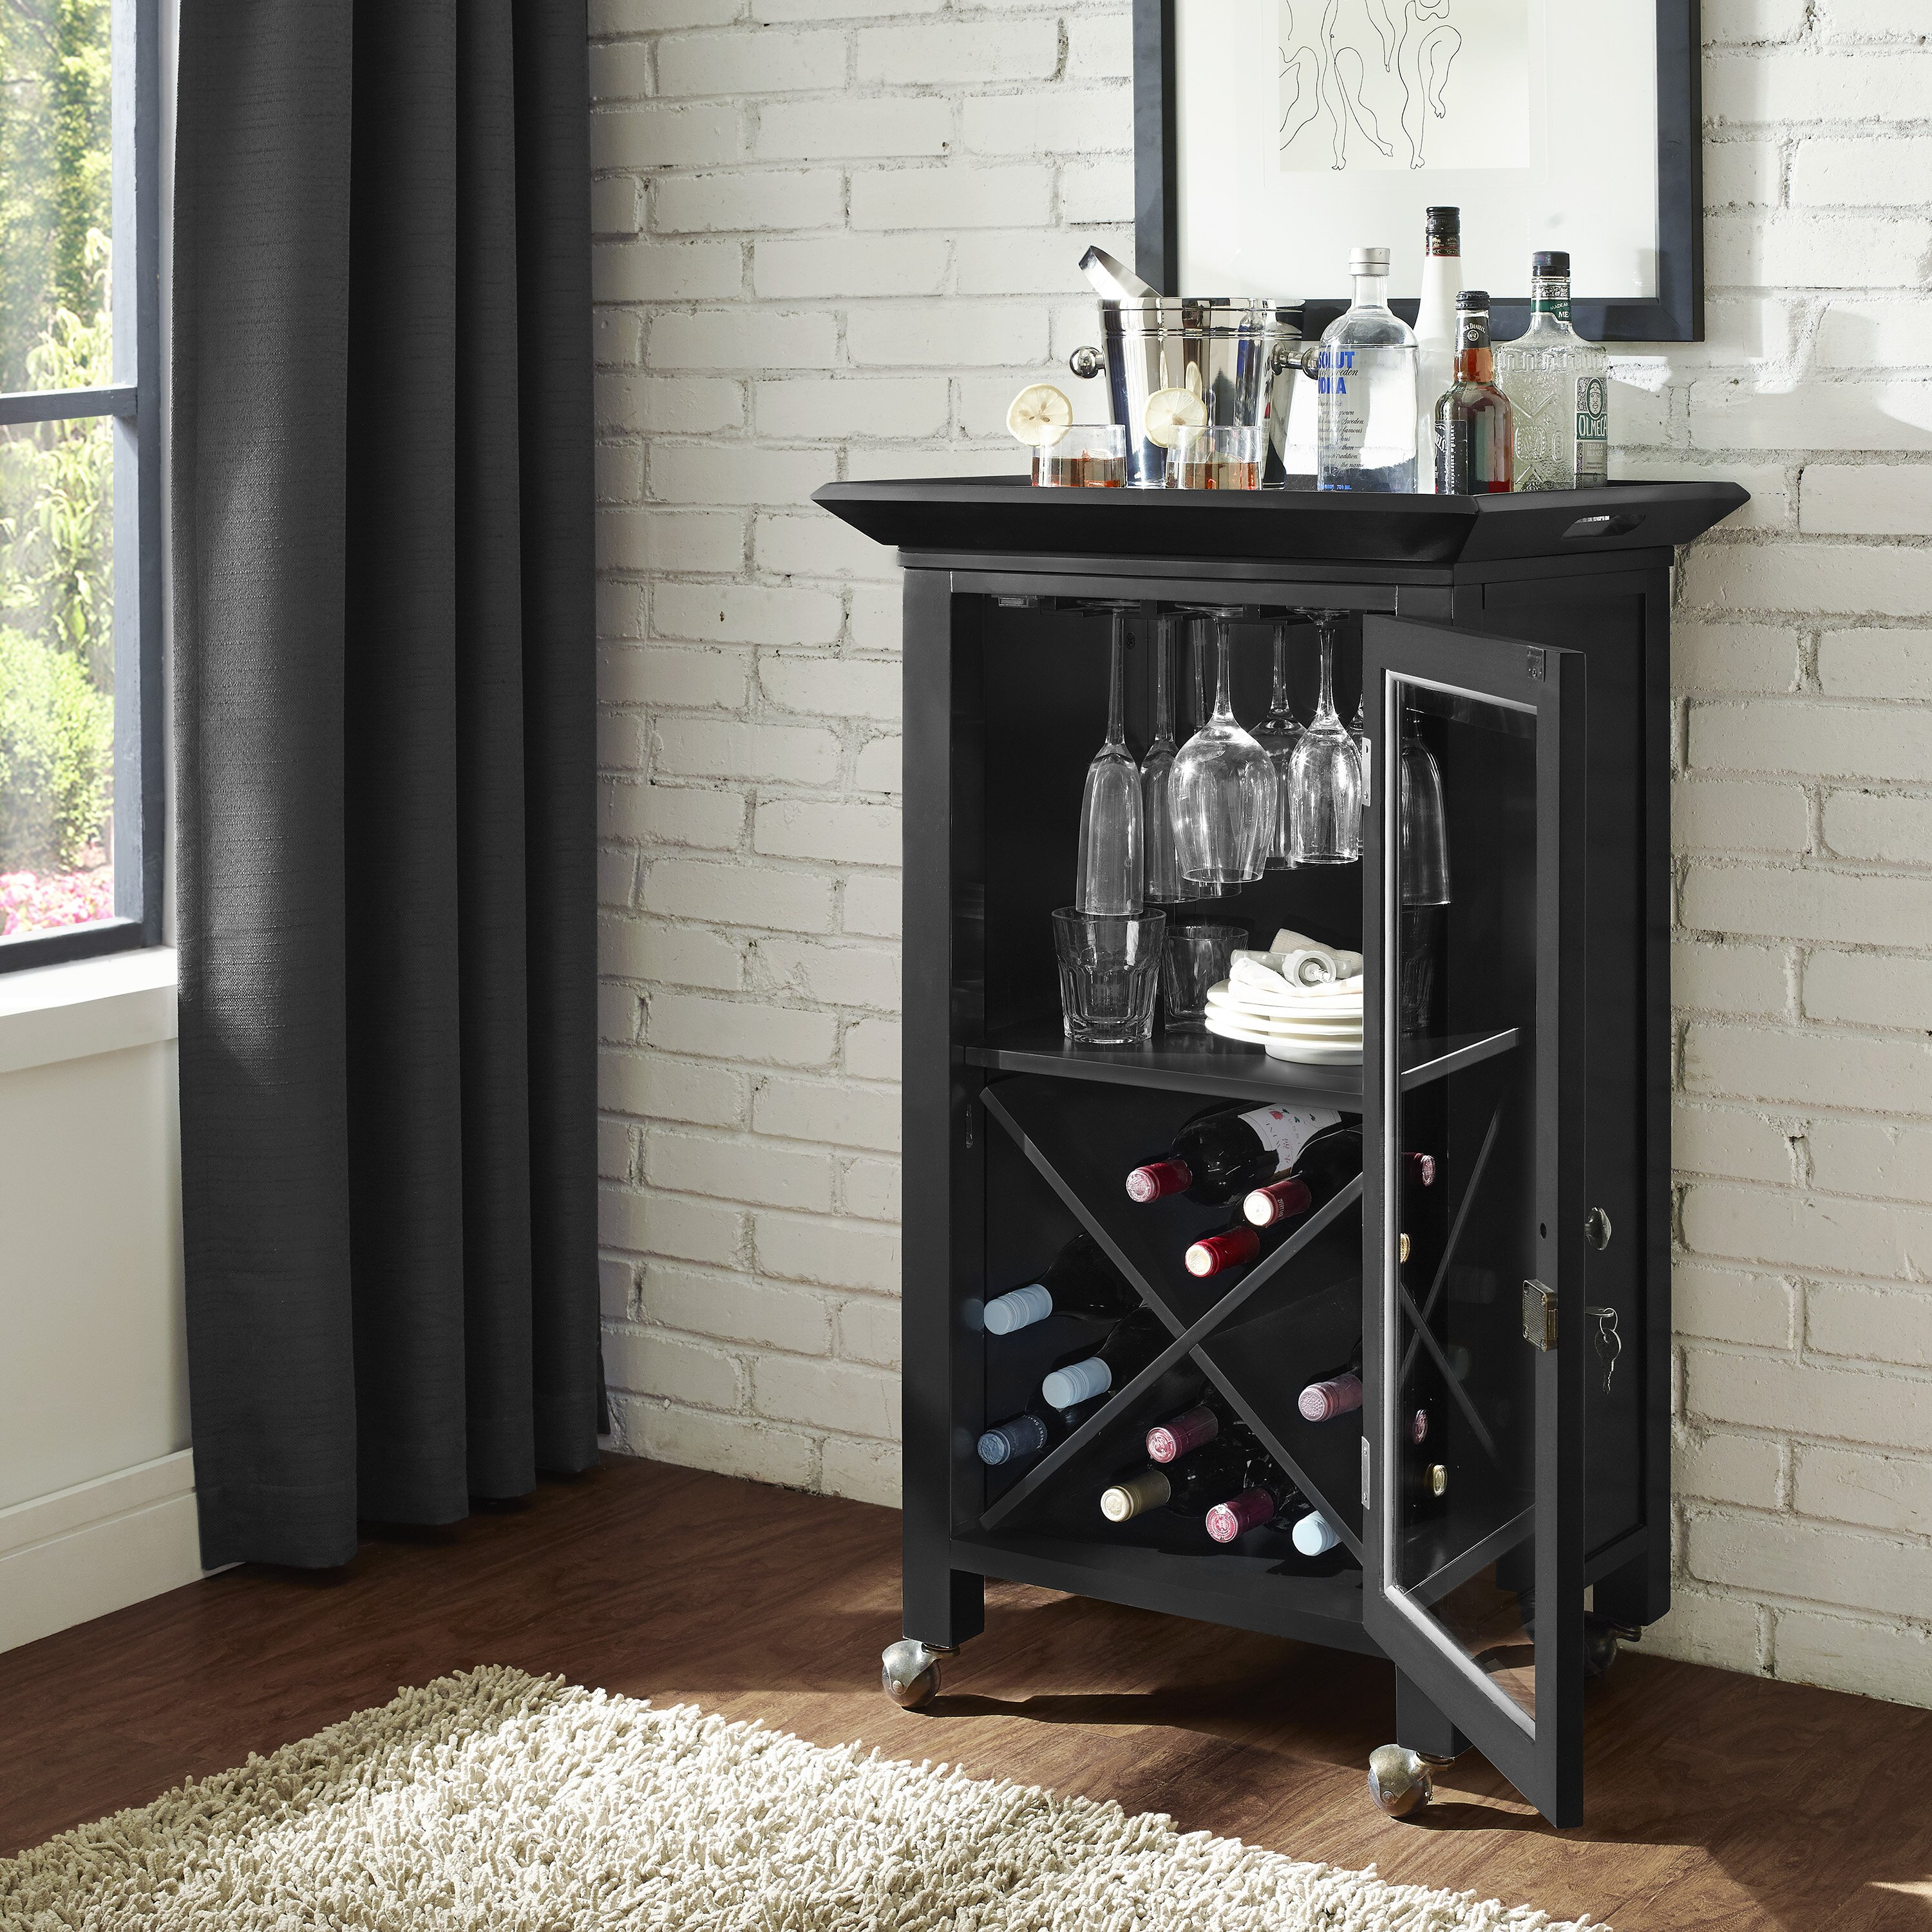 Movable Cabinet 1 4 A 1 4 A Movable Kitchen Cabinets India: Crosley Jefferson Portable Bar Cabinet & Reviews